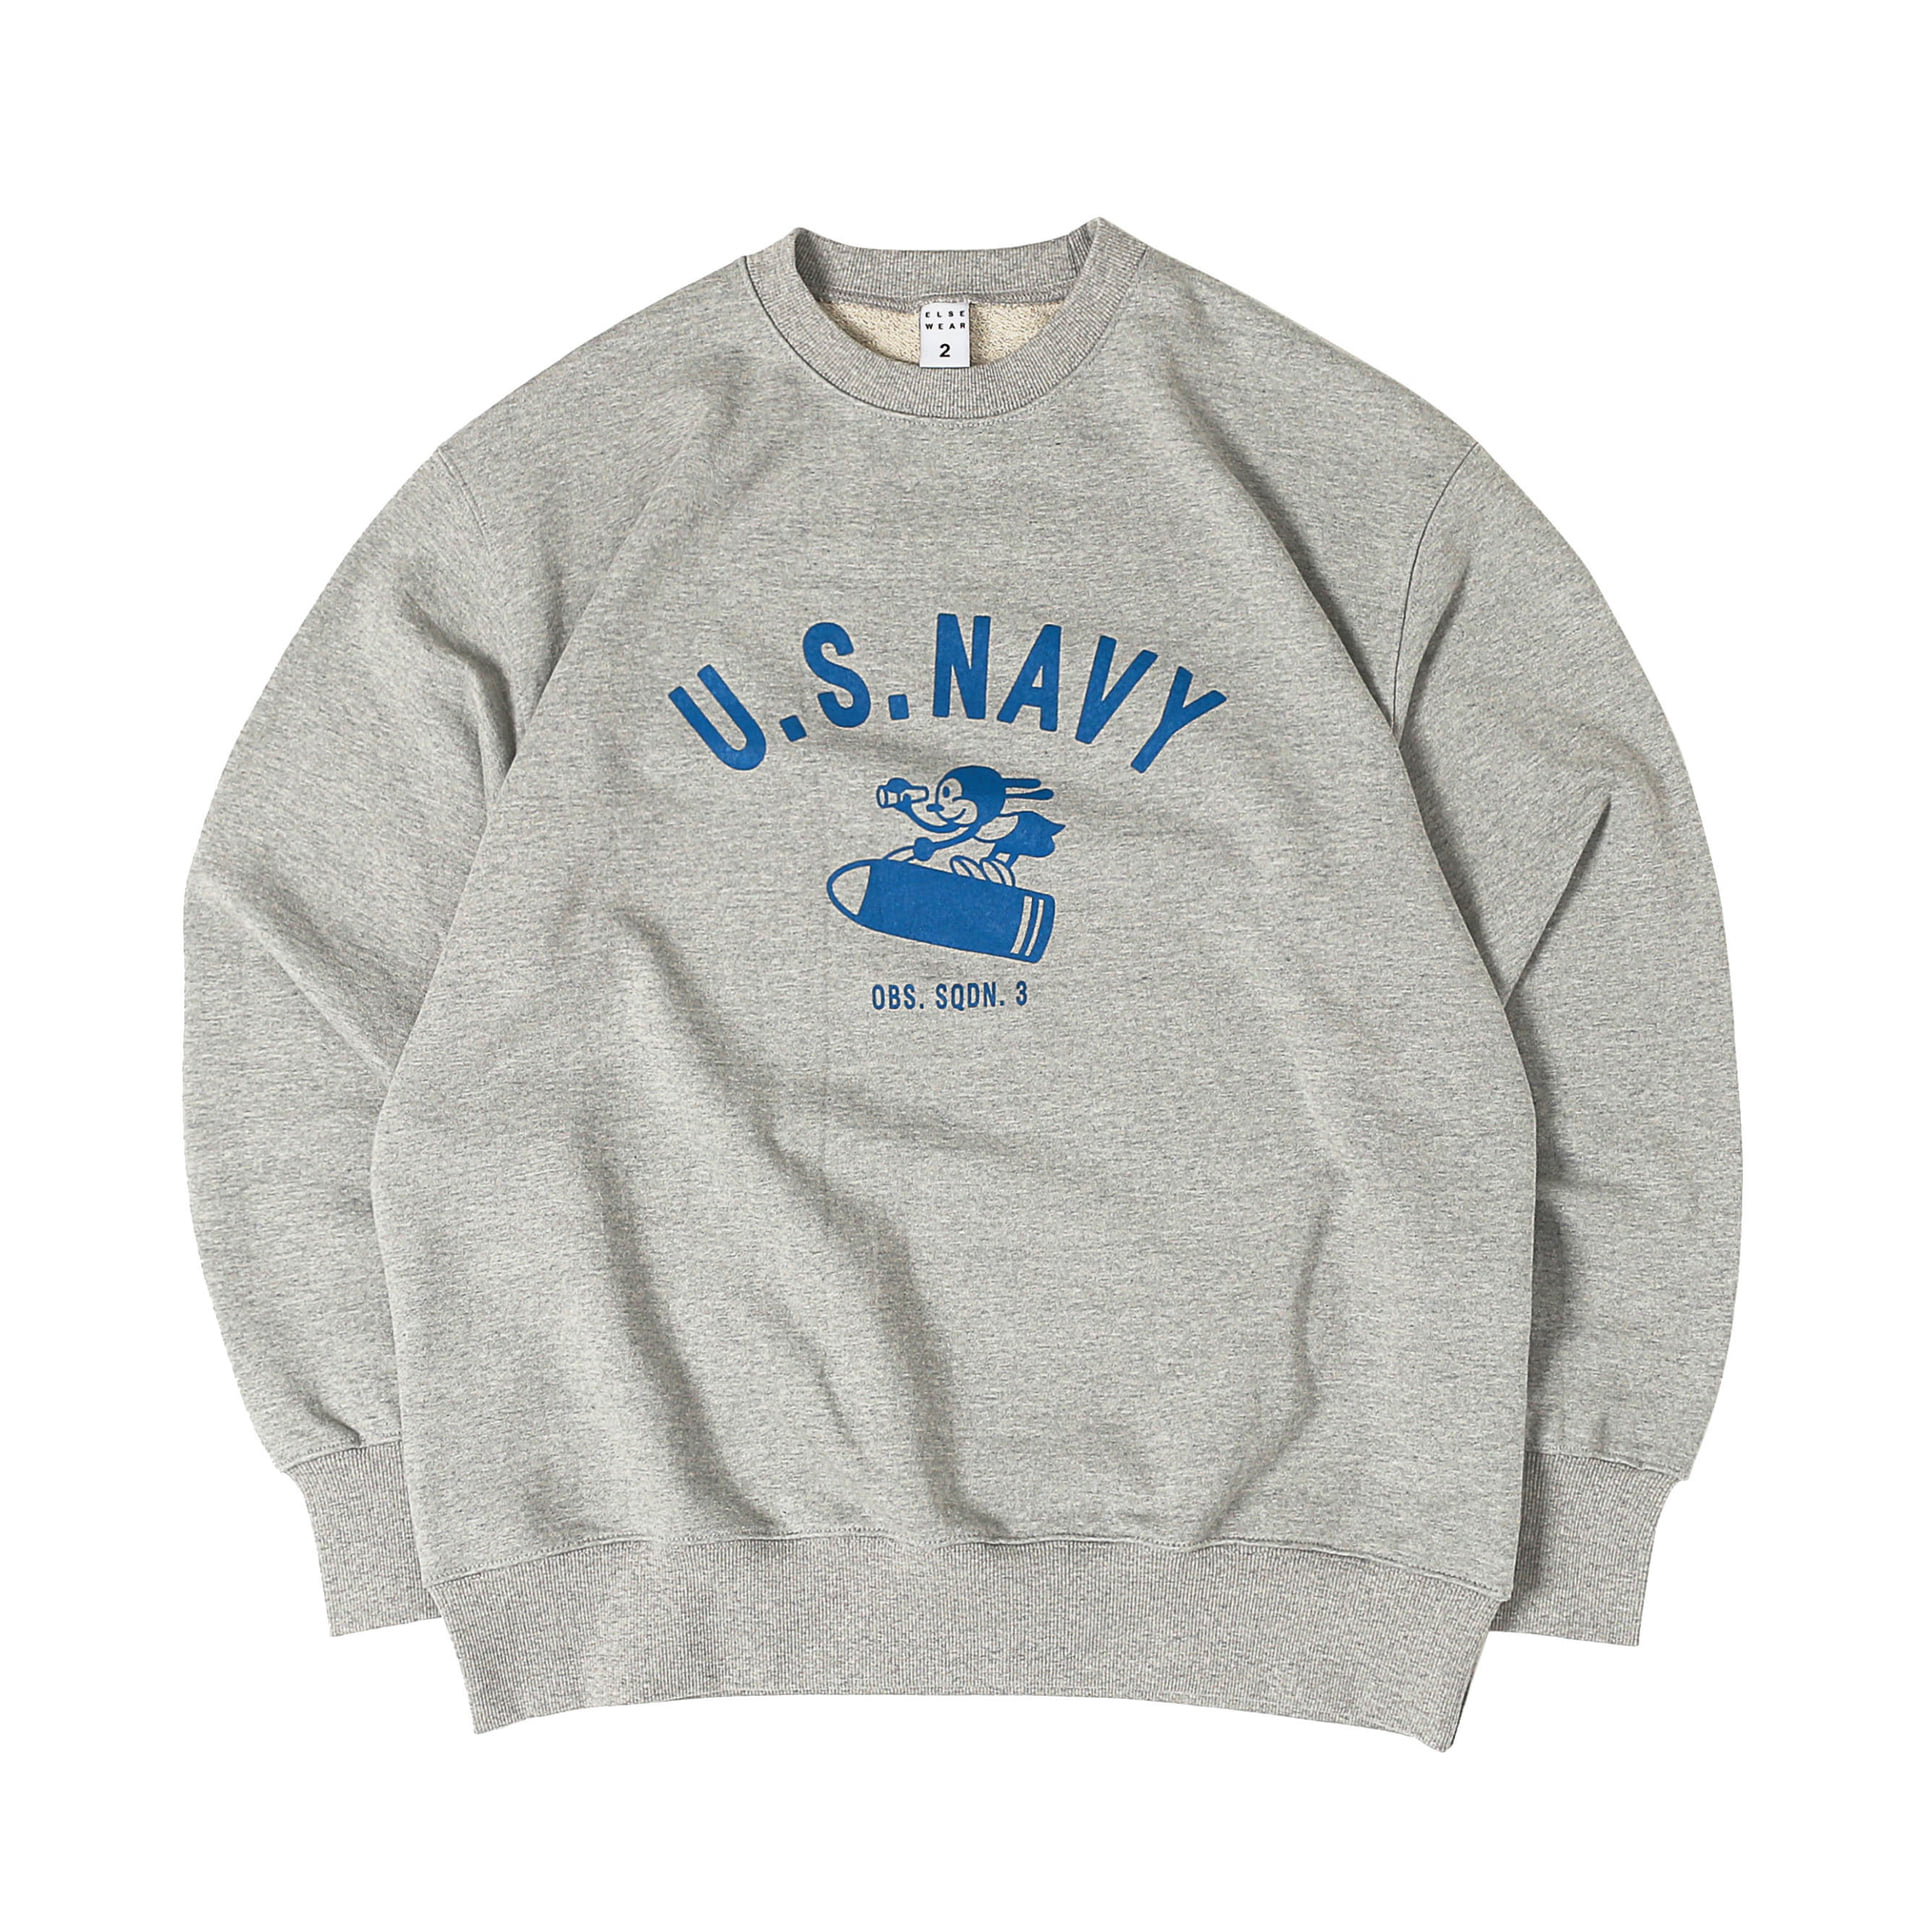 U.S.N LUCKY RABBIT SWEAT (Melange Gray)